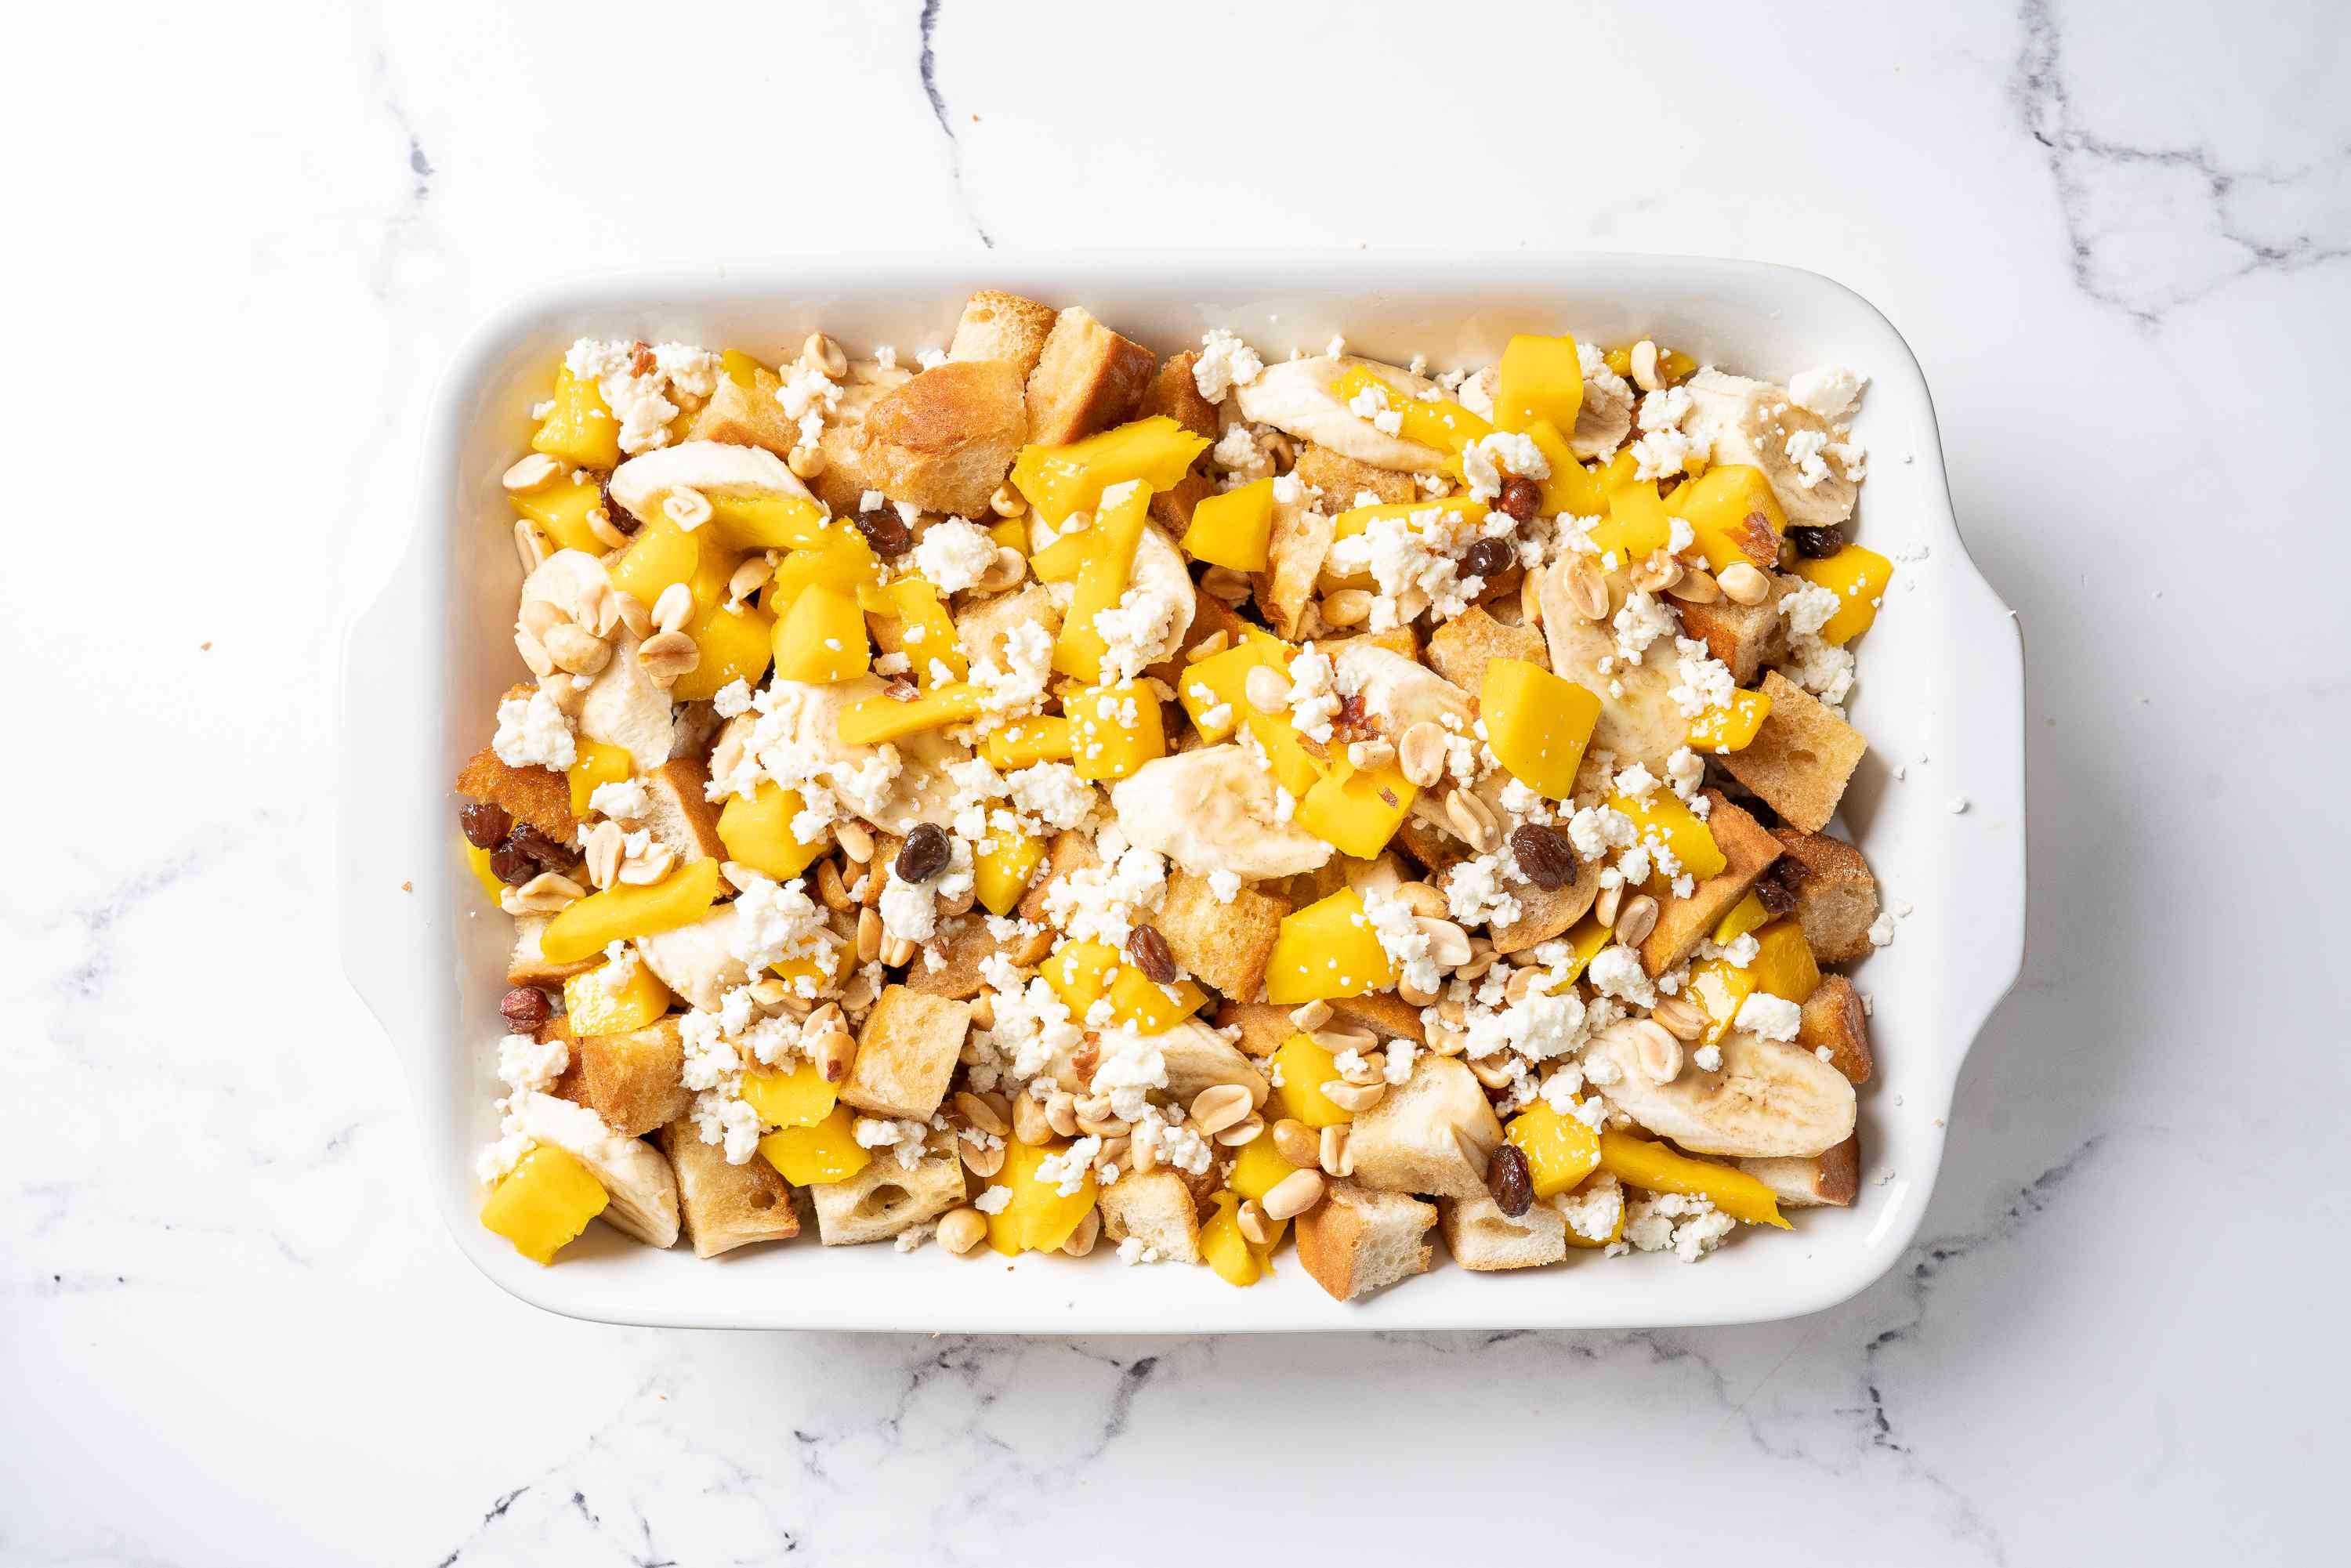 Second layer of bread, fruit, nuts, and cheese in a casserole dish